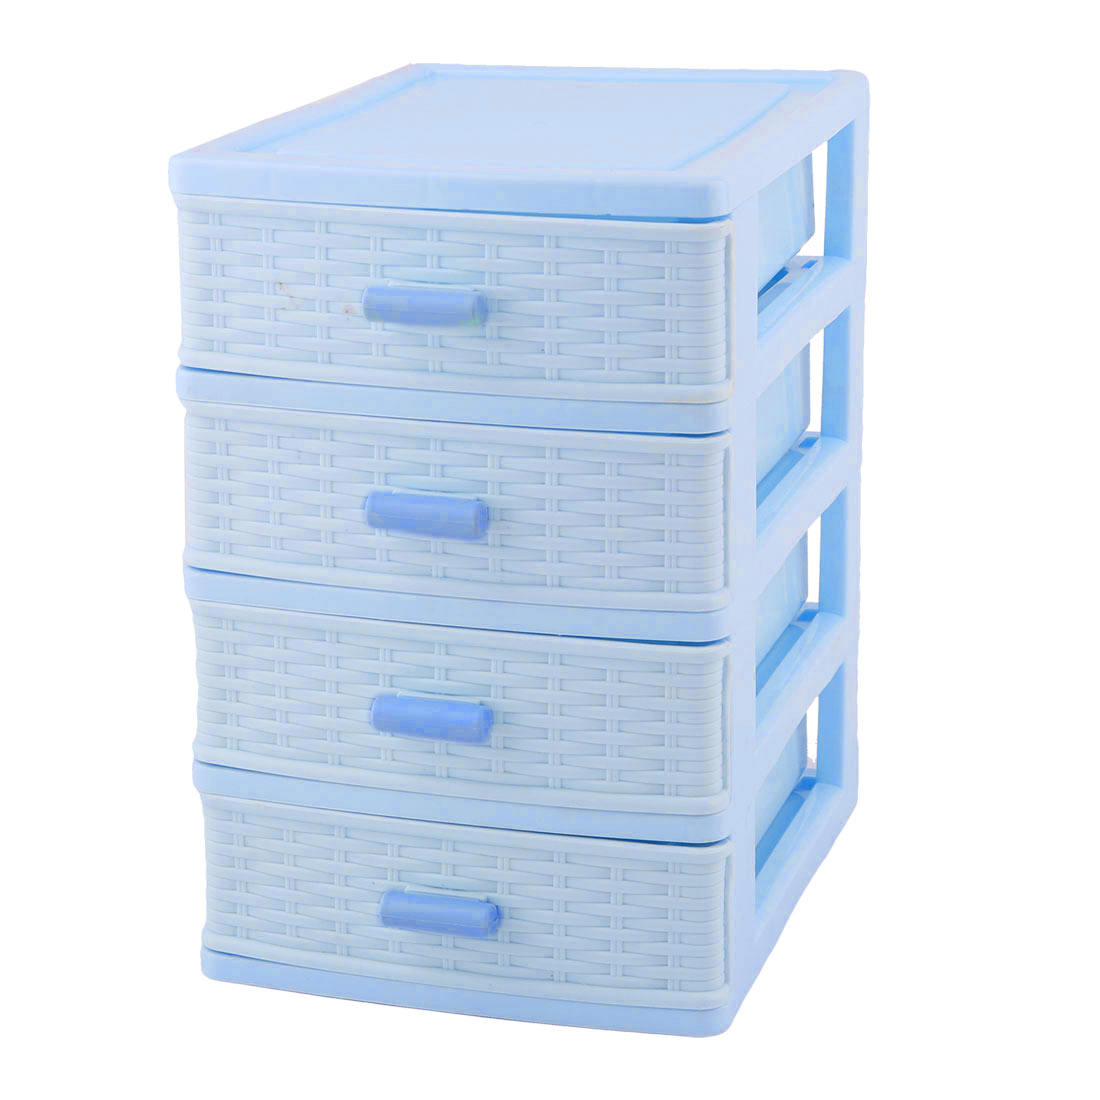 Bedroom Room Plastic 4 Layers Cosmetics Sock Jewelry Storage Box Case Light Blue